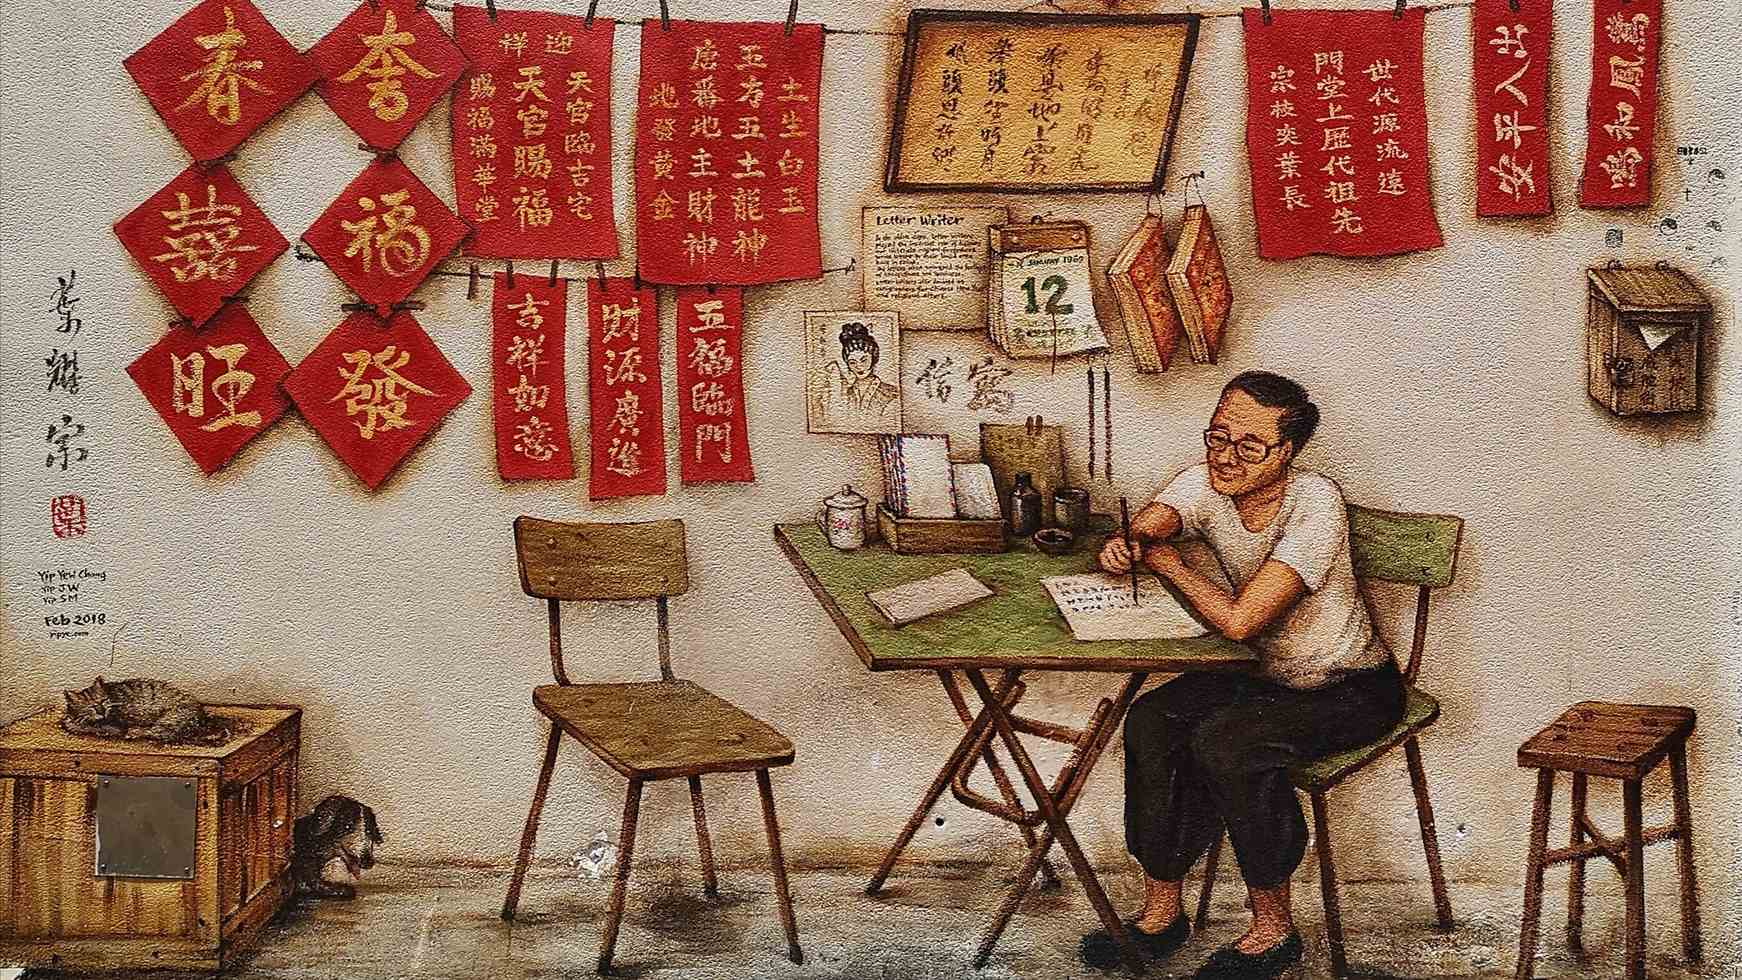 Walls Of Fame: Chinatown Murals By Yip Yew Chong